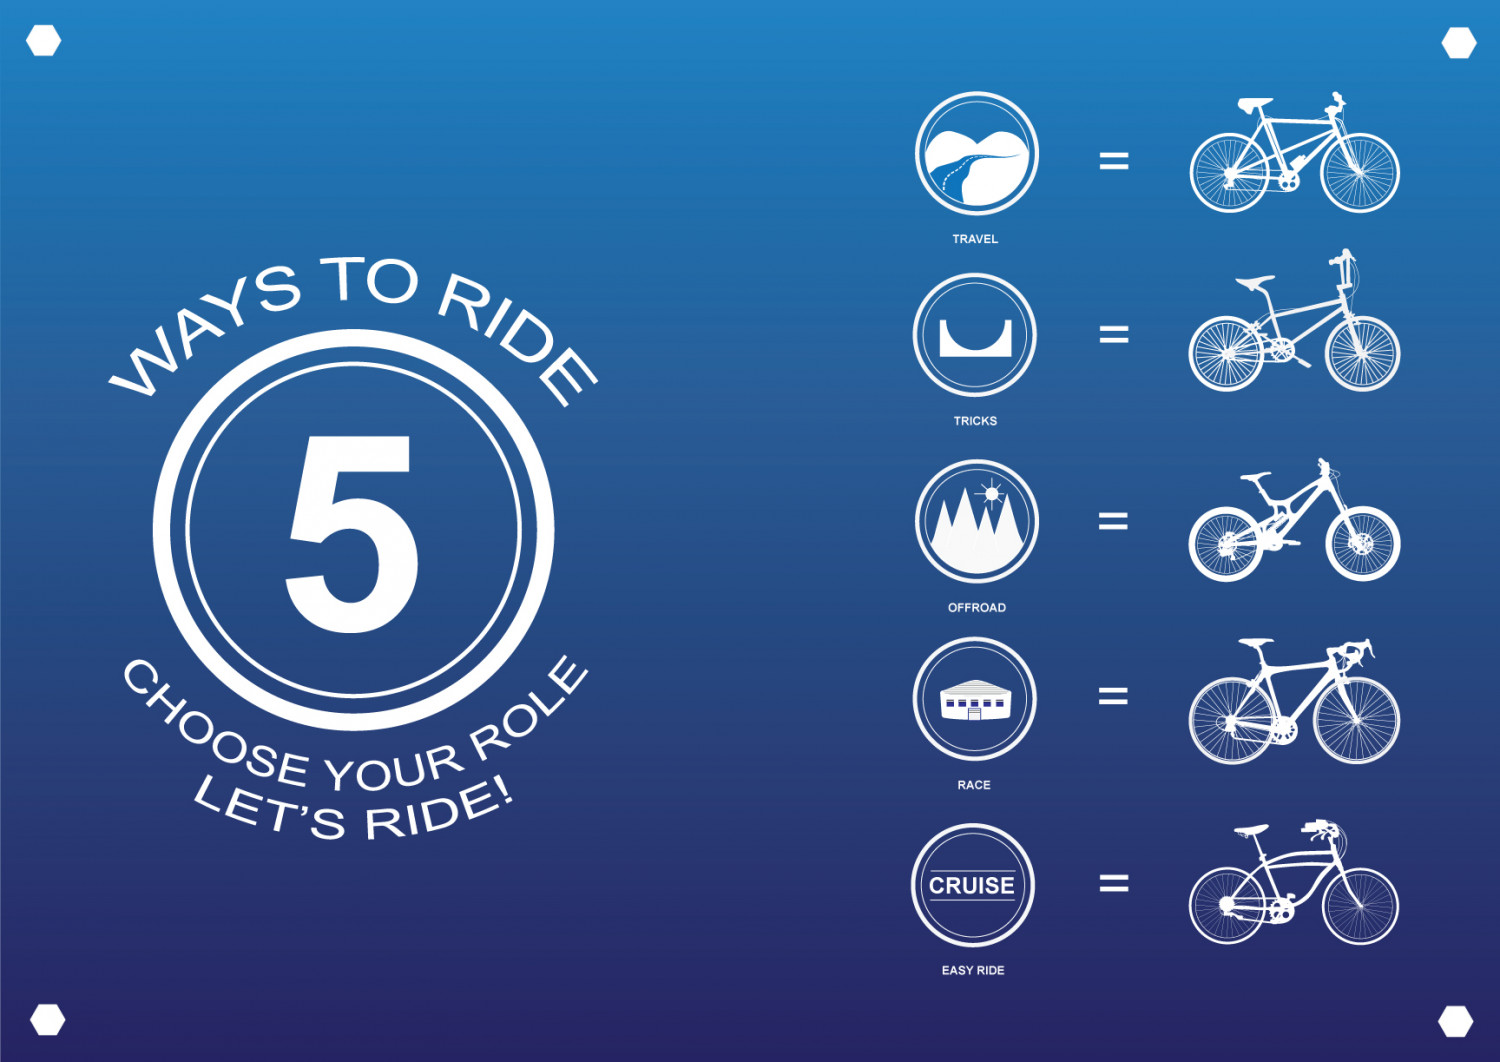 5 Ways to Ride Infographic